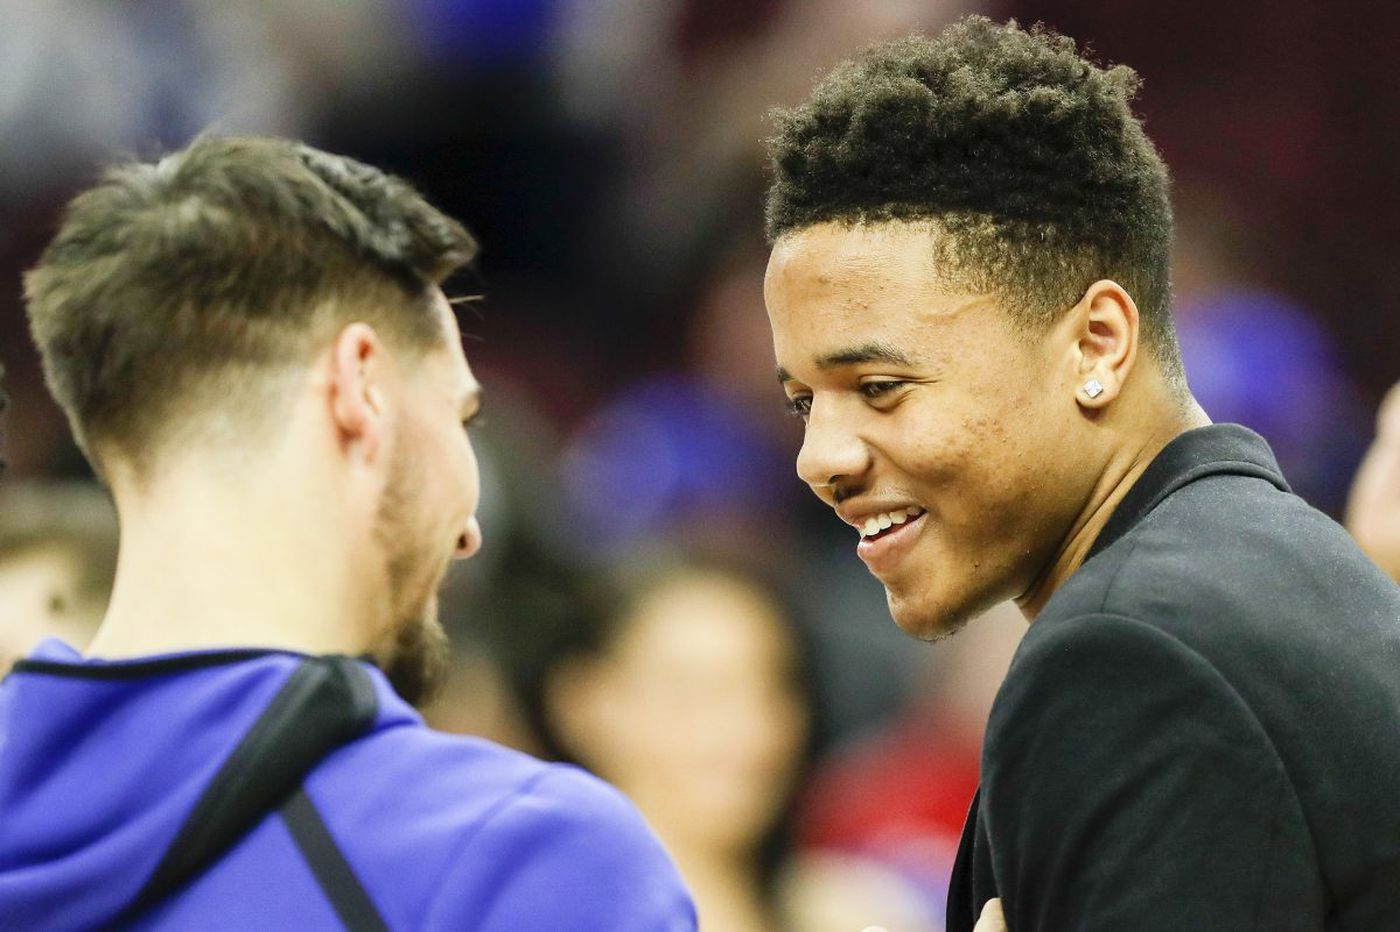 What can history tell us about how the Sixers' Markelle Fultz will fare when he returns?